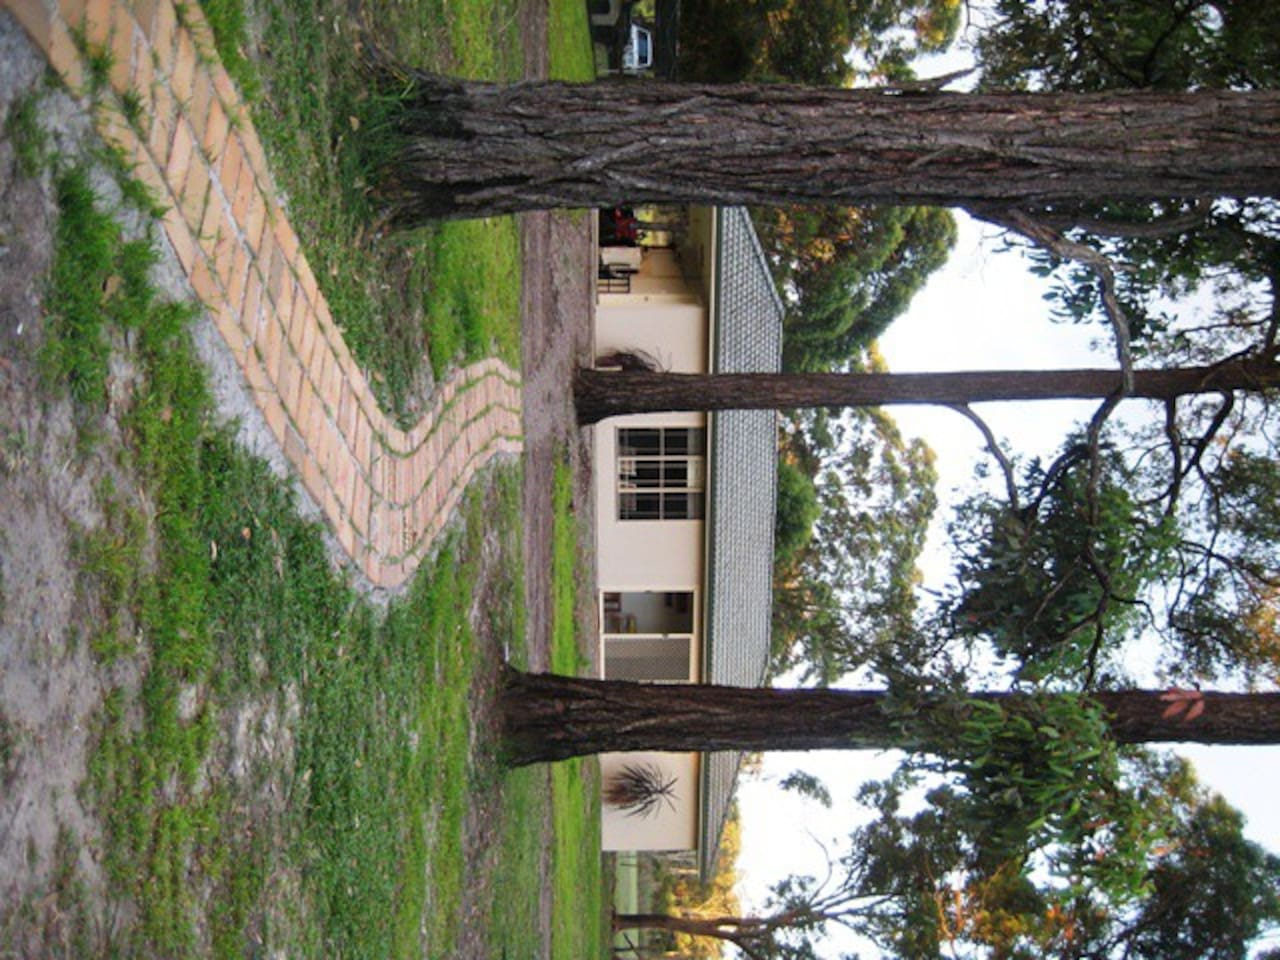 Entrance to Ironbark Cottage